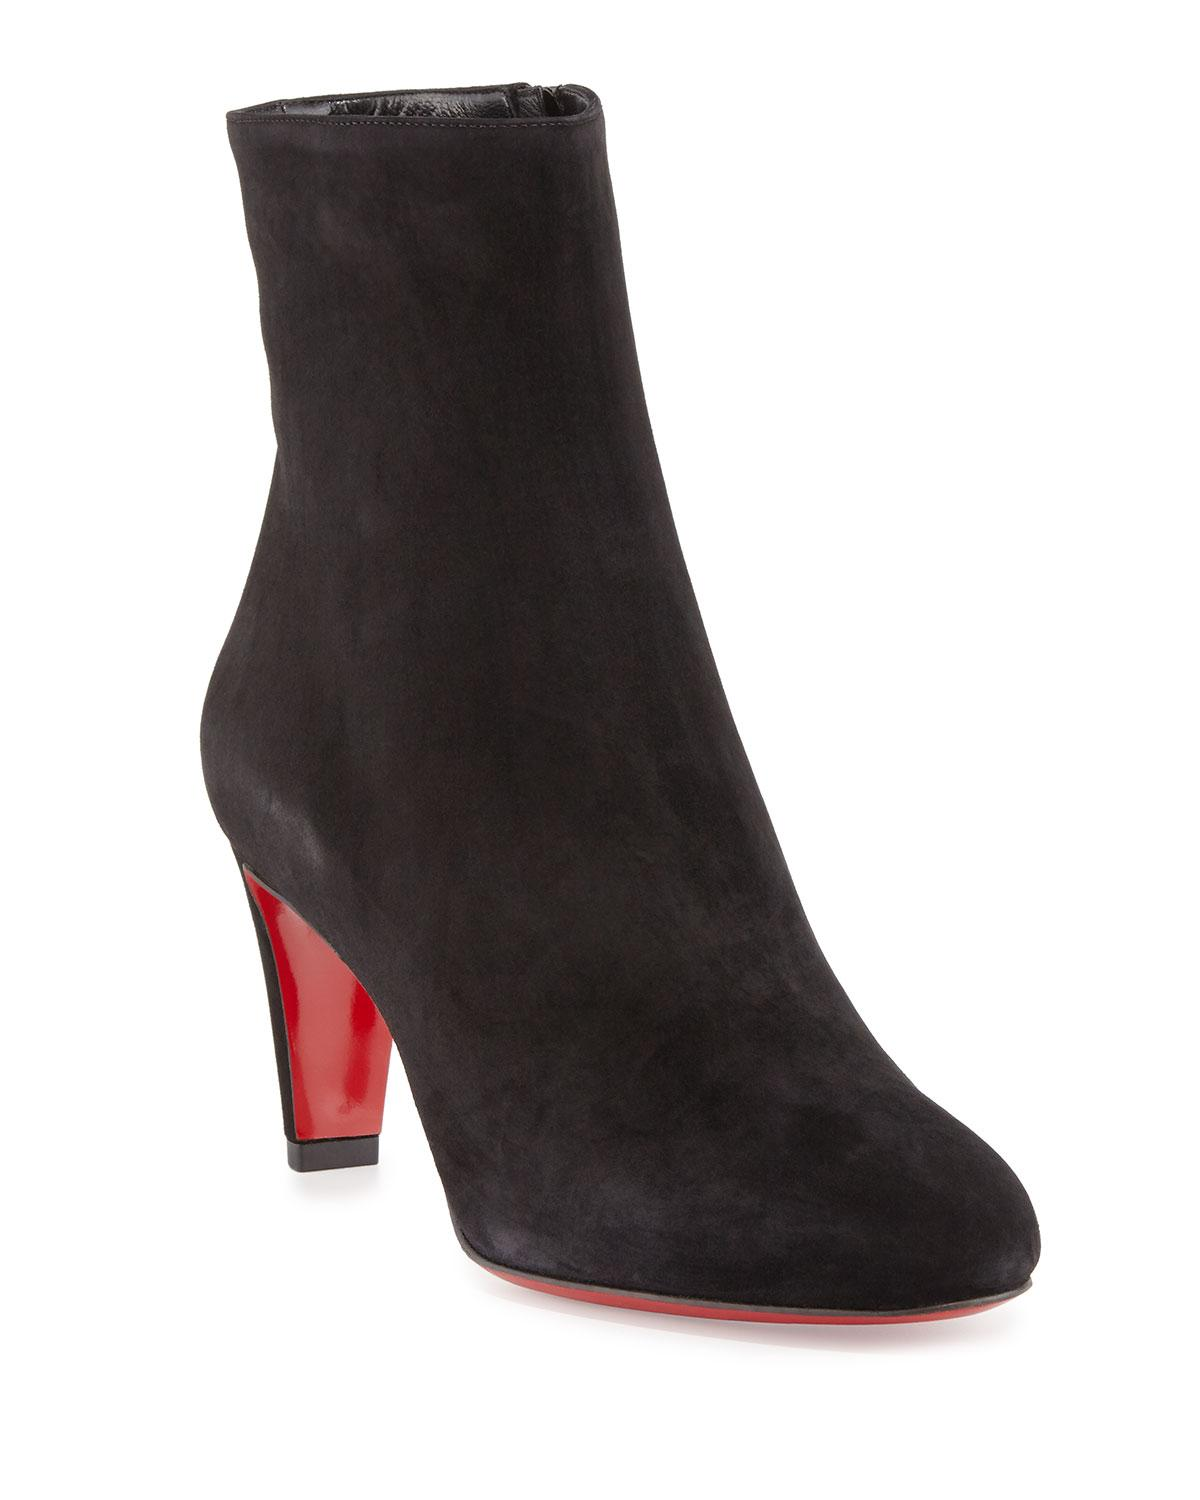 81ab0e84907f8 Lyst - Christian Louboutin Top Suede Ankle Boots in Black